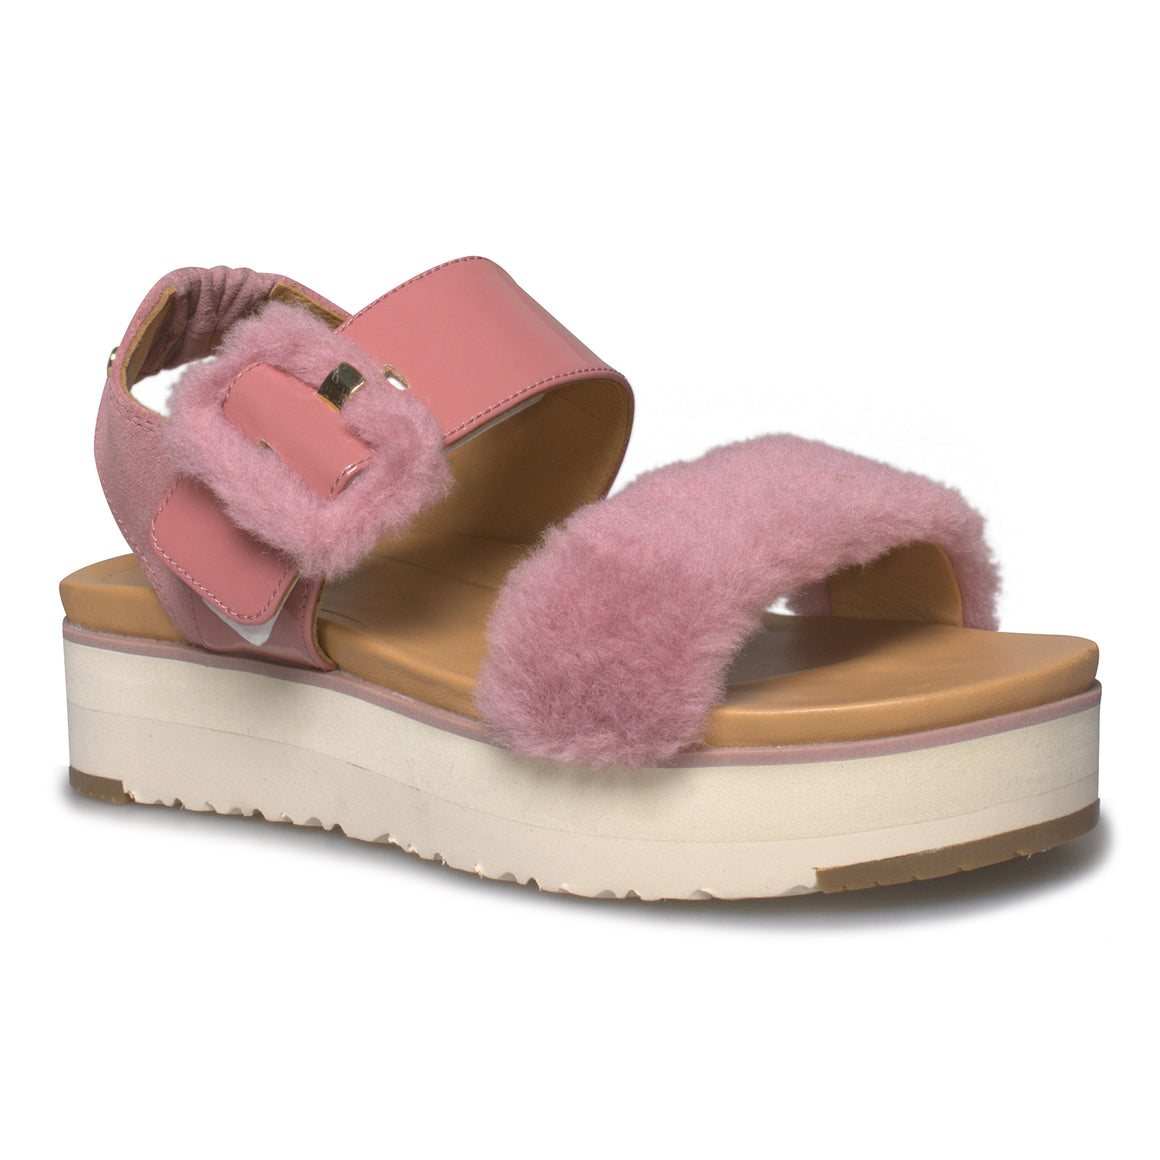 UGG Le Fluff Pink Dawn Sandals - Women's